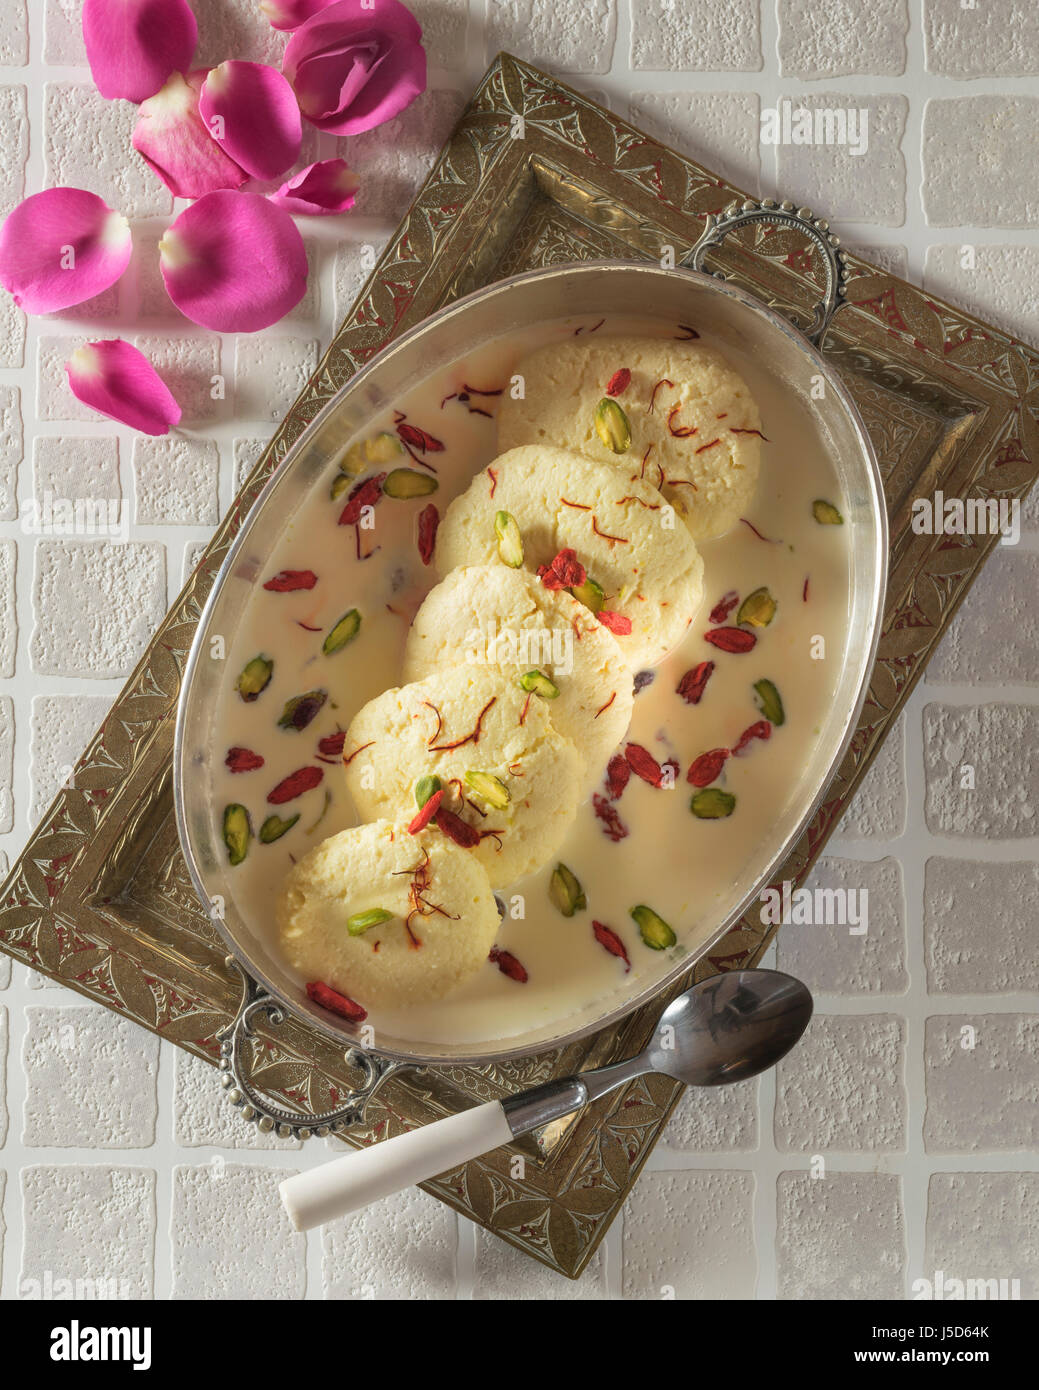 Rasmalai. Indian cream dessert. India Food - Stock Image